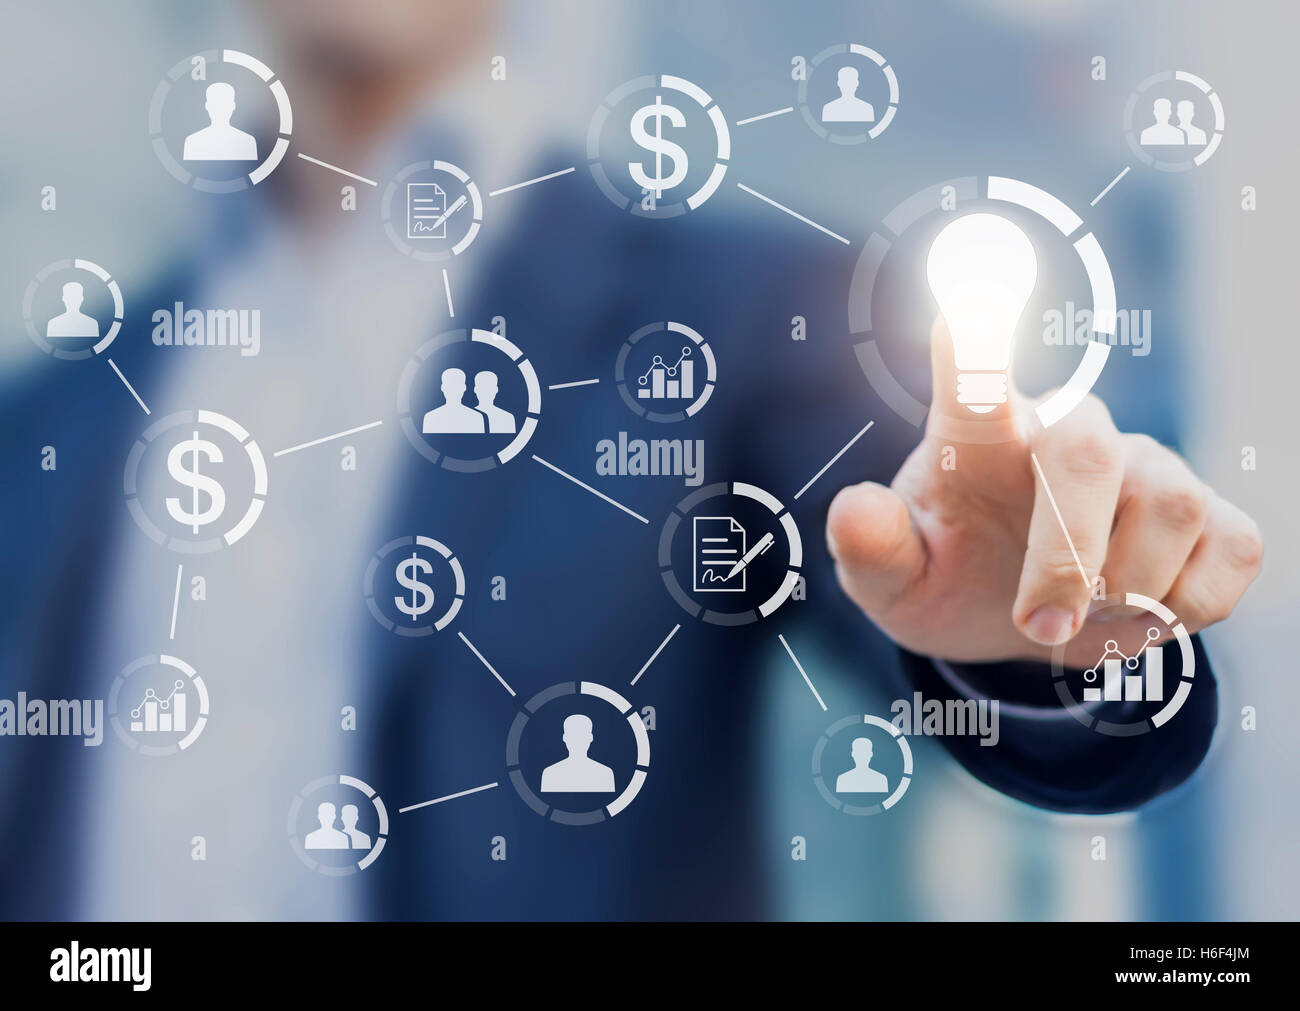 Concept about outsourcing, subcontracting or crowdsourcing solution. Businessman touching an idea button linked - Stock Image